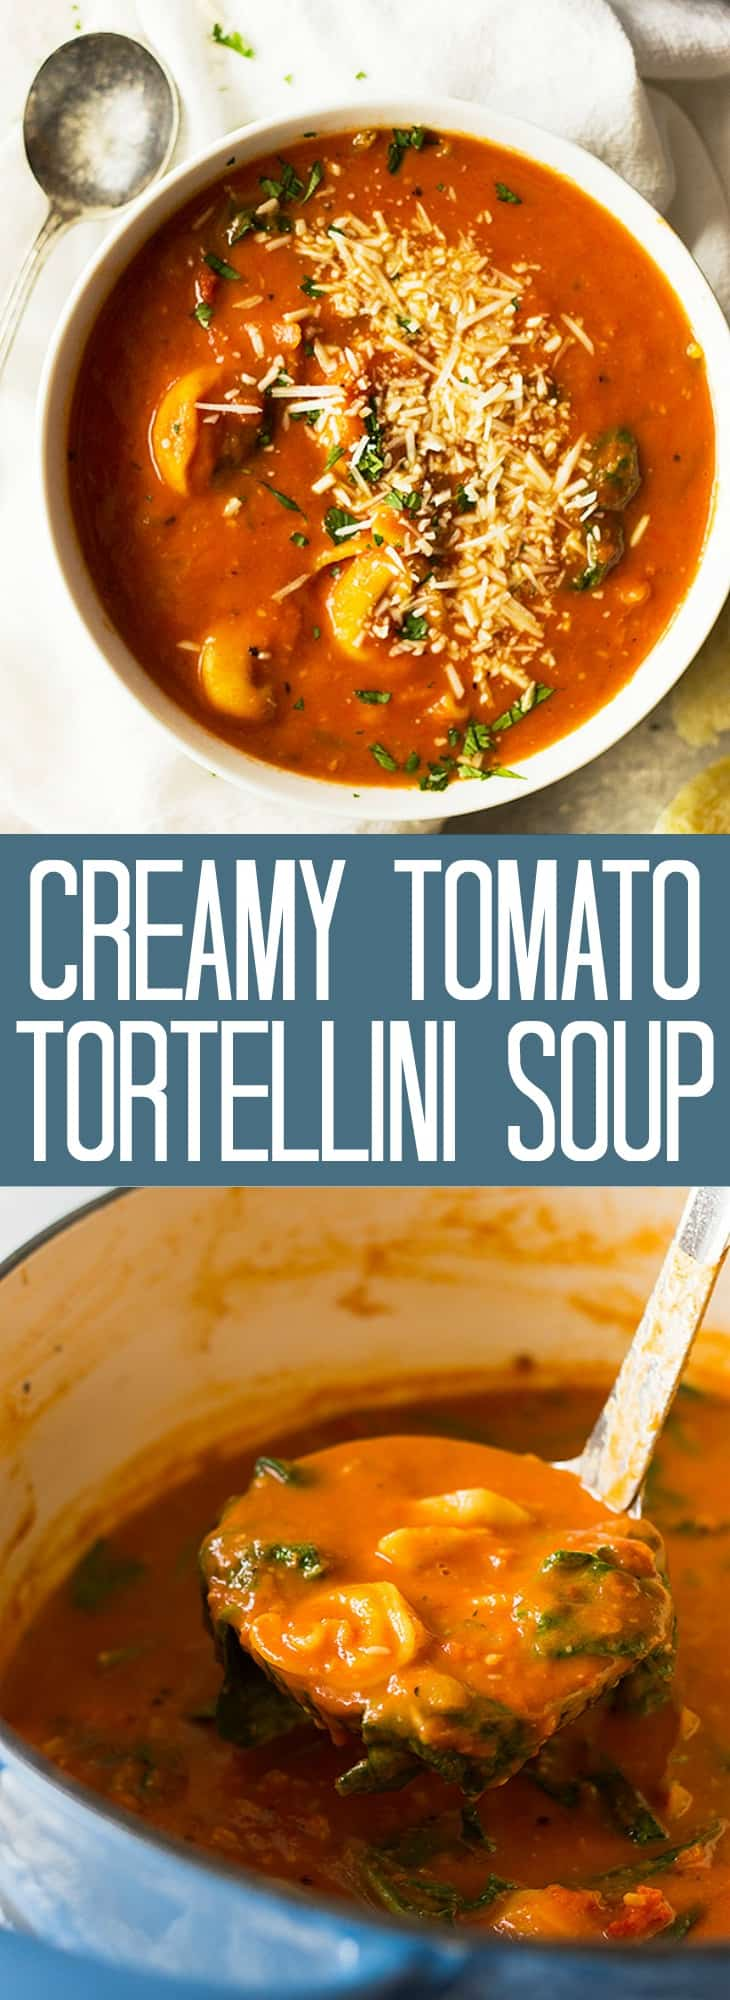 This Creamy Tomato Tortellini Soup is super easy and extra delicious! Filled with cheesy tortellini, tomatoes, herbs and a touch of cream! | www.countrysidecravings.com